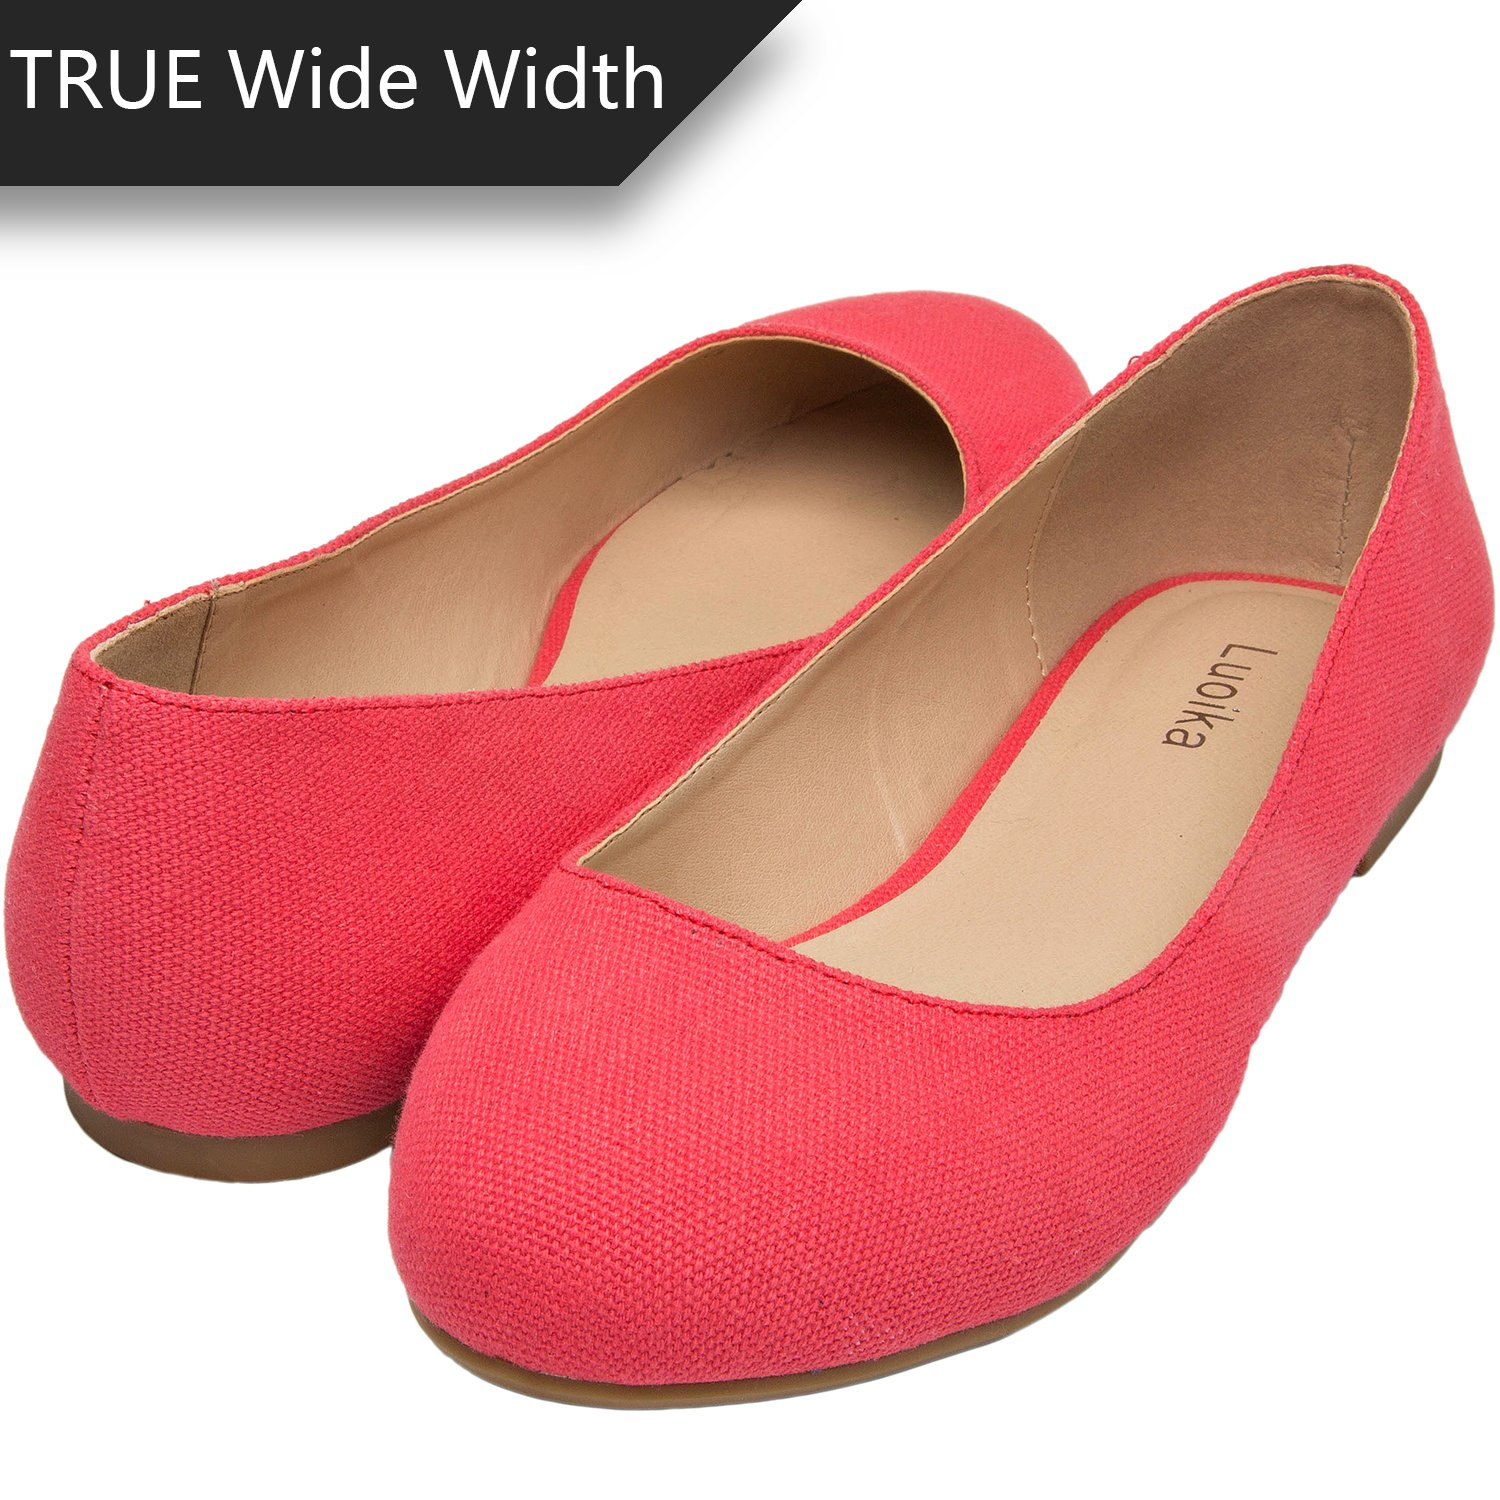 Luoika Women's Wide Width Flat Shoes - Comfortable Slip On Round Toe Ballet Flats (6 W(W) US, Red Canvas)